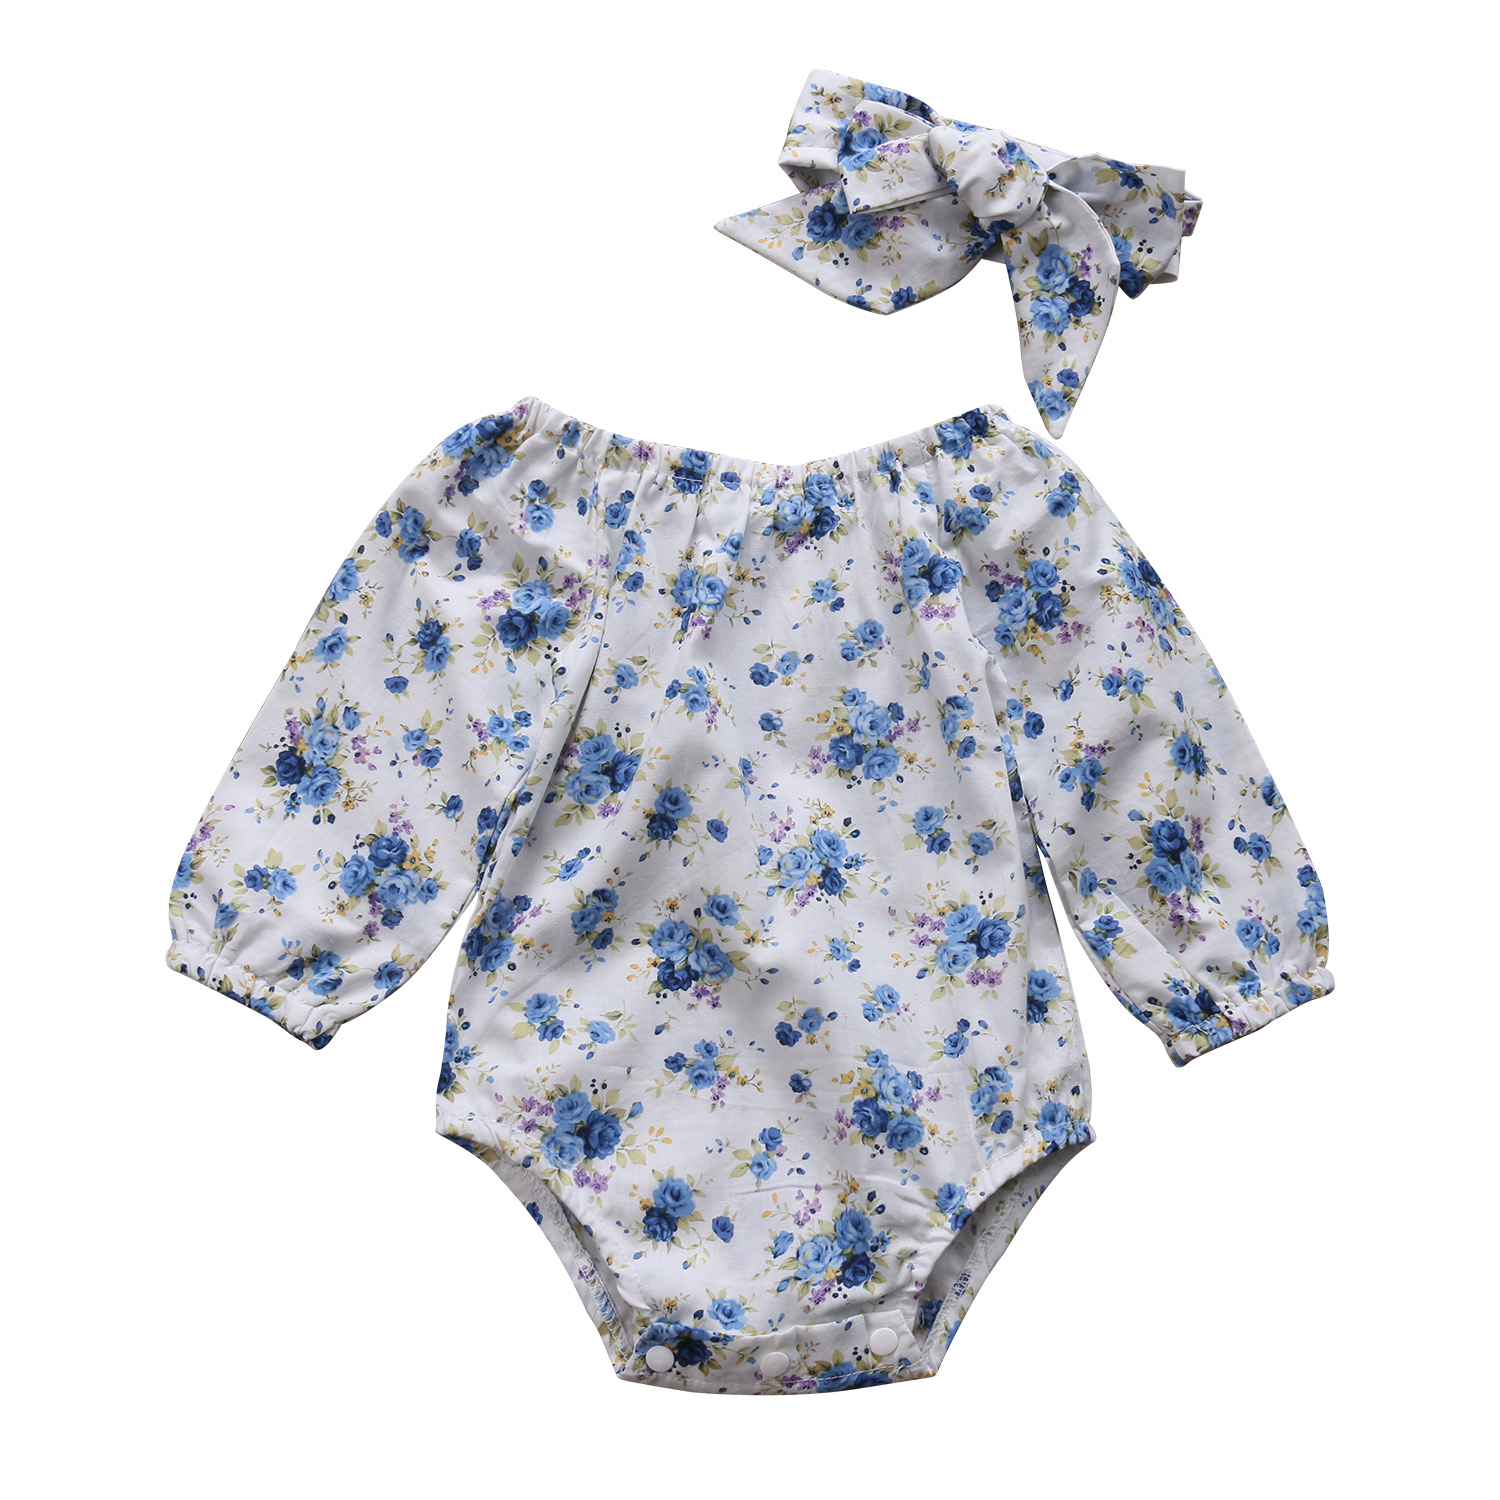 Mother & Kids Girls' Baby Clothing 2pcs New Baby Girl Bodysuits Long Sleeved Clothes Newborn Baby Girl Blue Floral Bodysuit Jumpsuit Kids Outfits One Piece Clothes